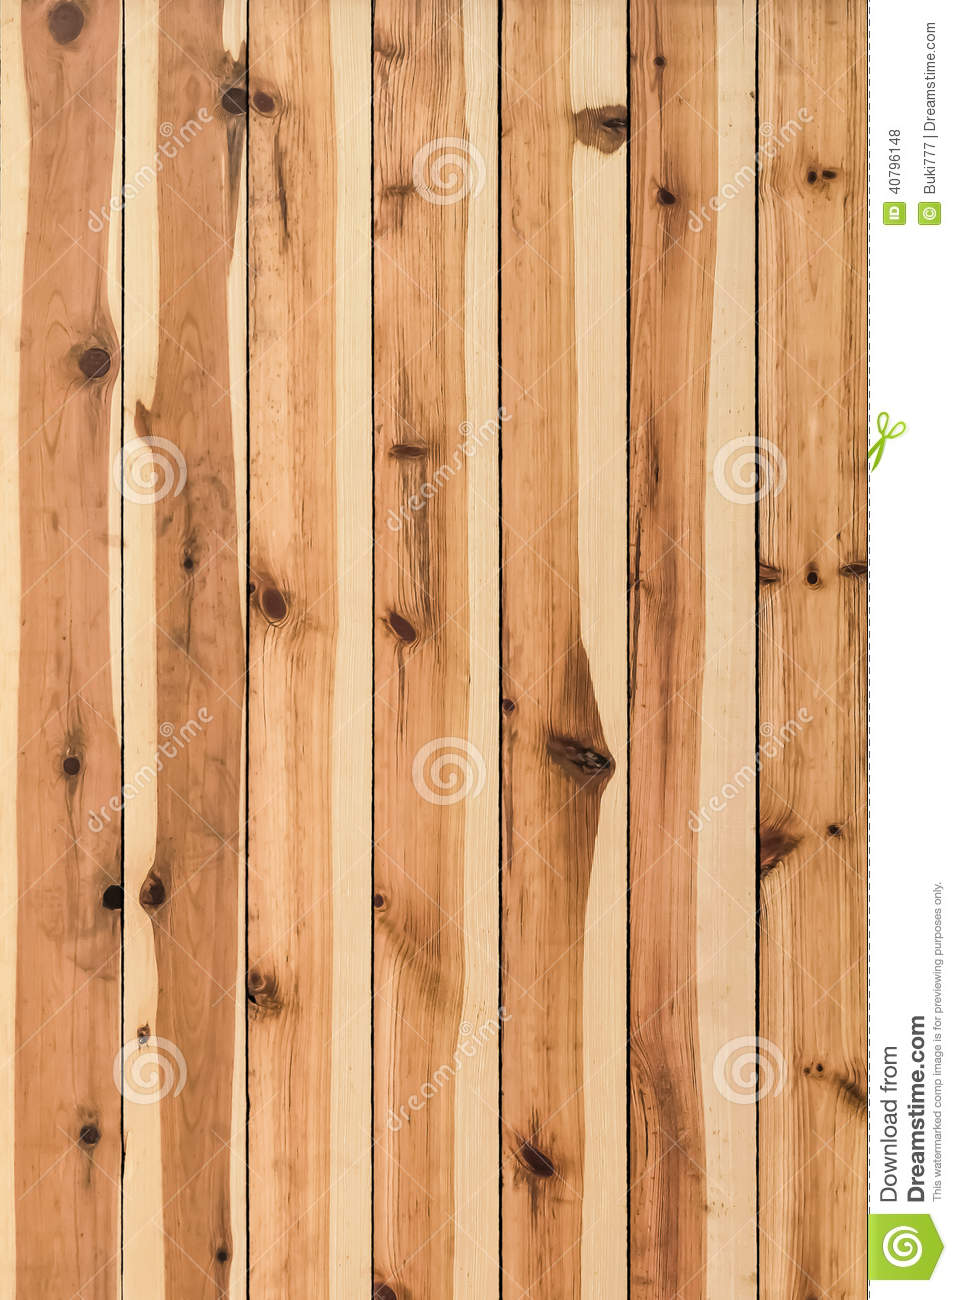 White Pine Knotted Planks Hut Wall Surface Detail Stock